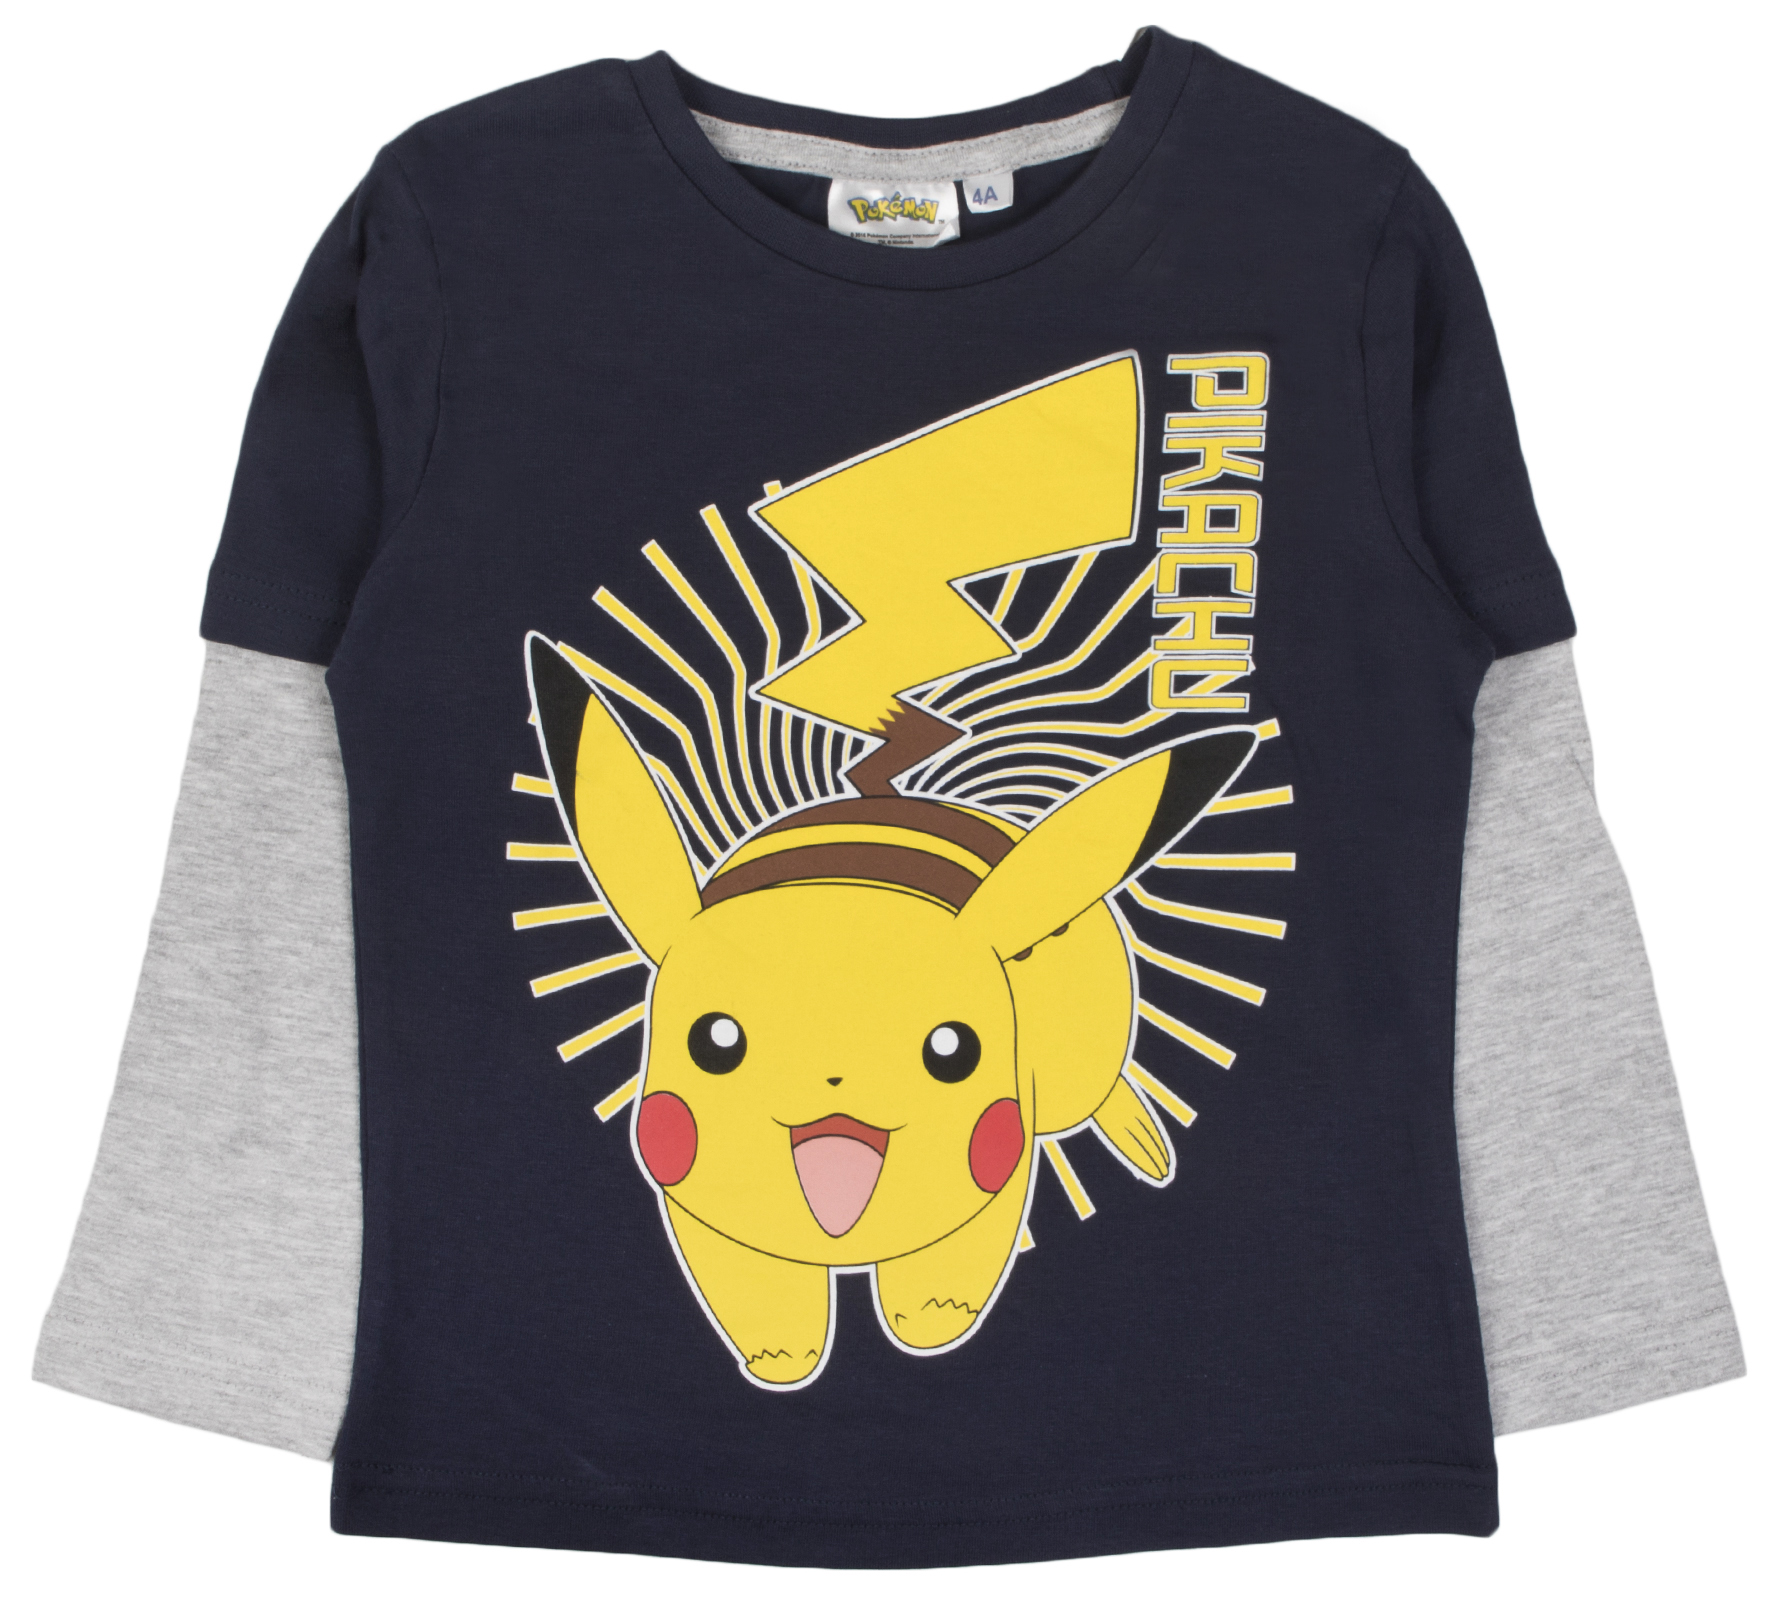 6008310f296 Boys Pokemon Long Sleeve Top 100% Cotton T Shirt Beach Summer Shirt ...